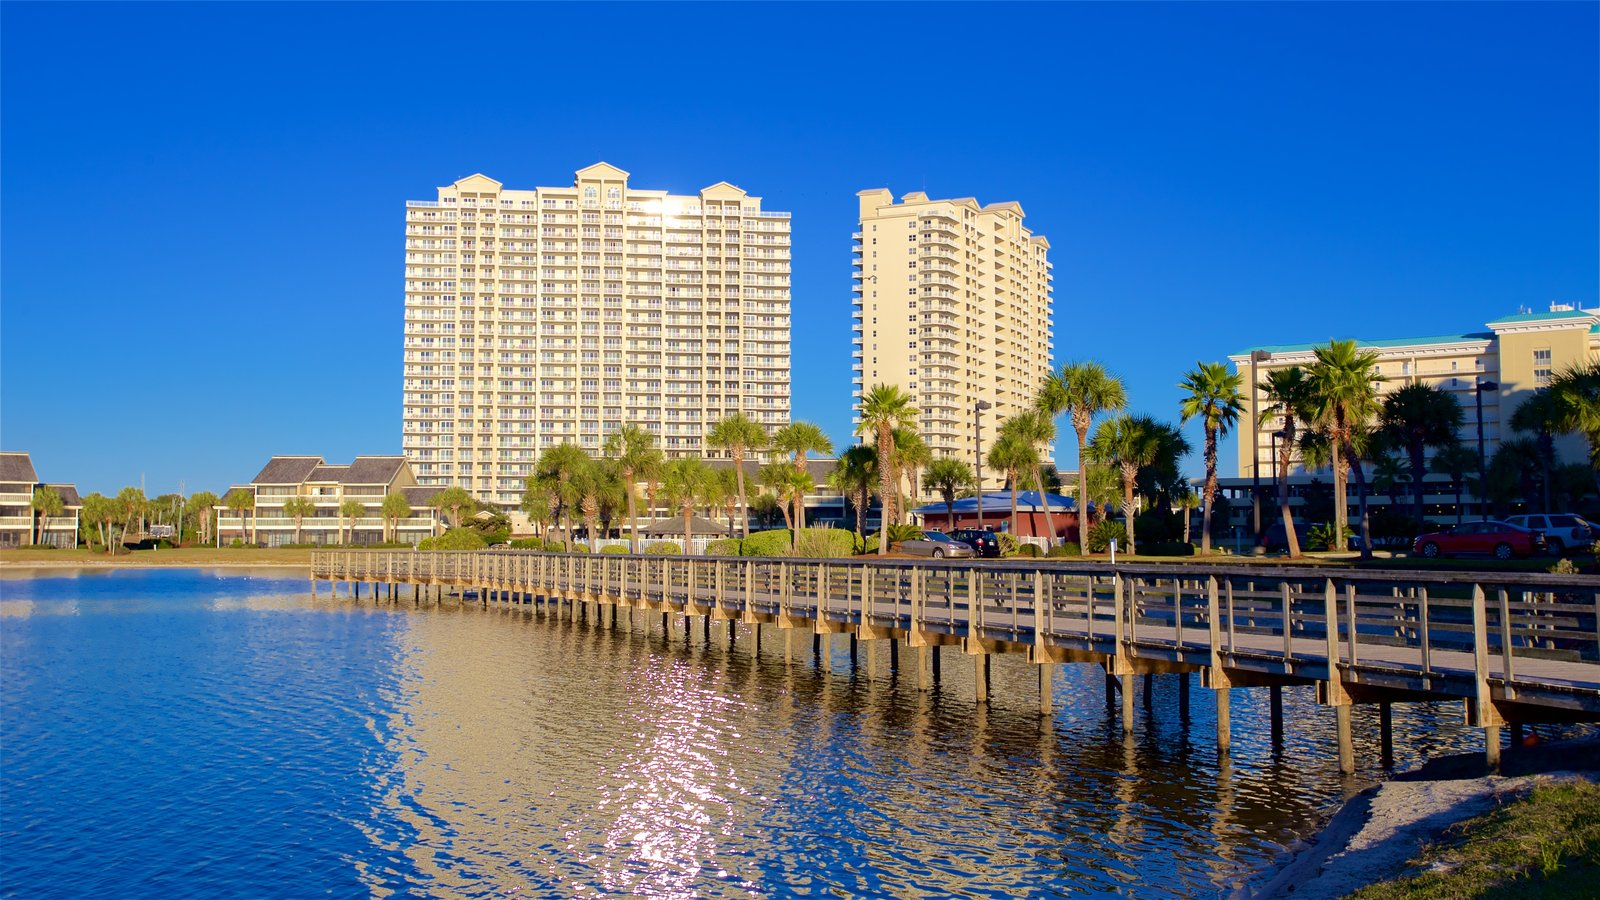 Florida Panhandle showing a coastal town, a bay or harbor and a skyscraper